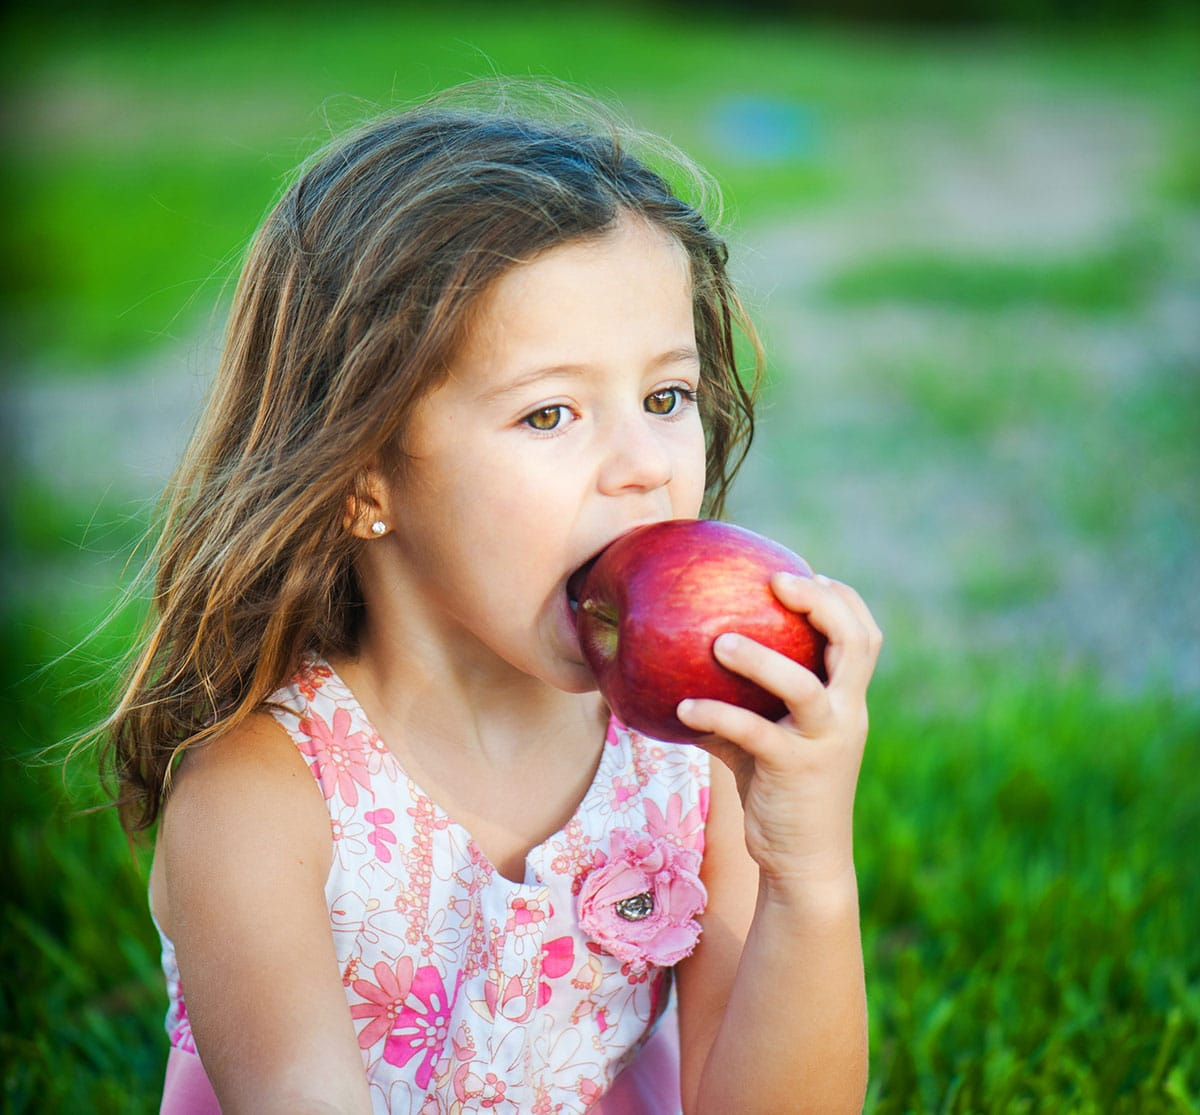 girl chewing an apple